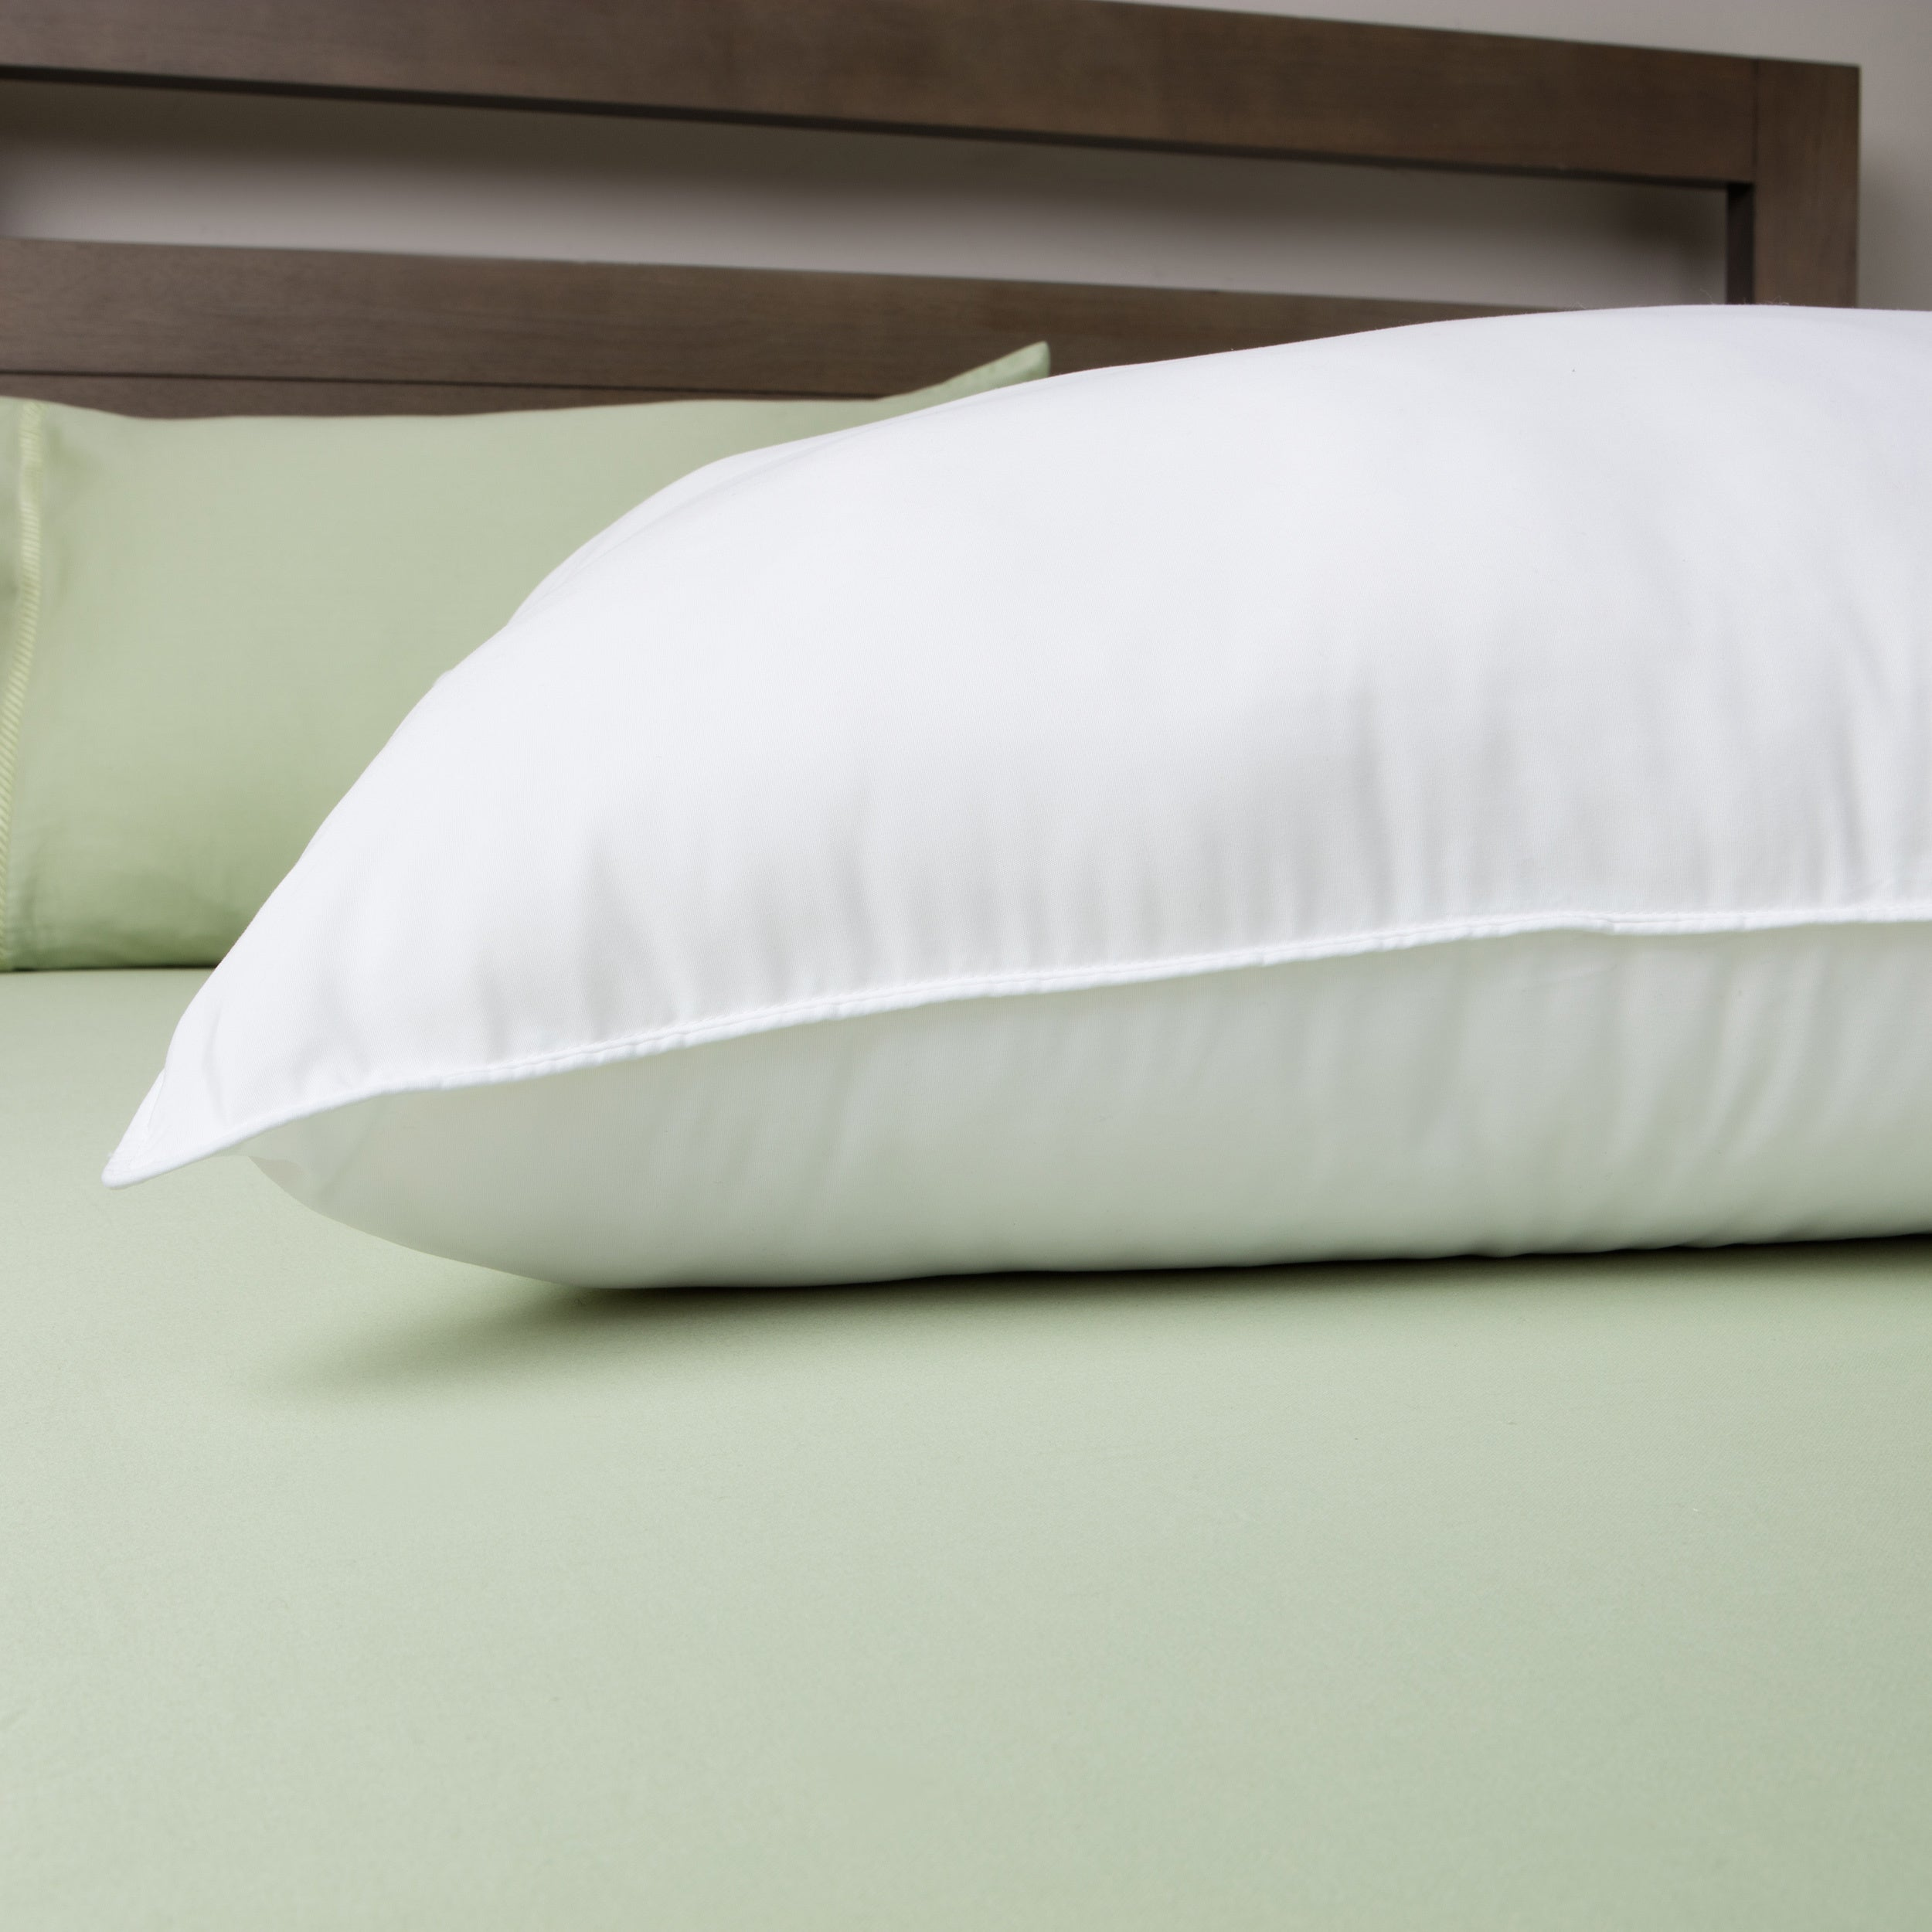 Luxury Dacron Comforel Down Like Density Pillows Set Of 2 Free Shipping On Orders Over 45 17937292